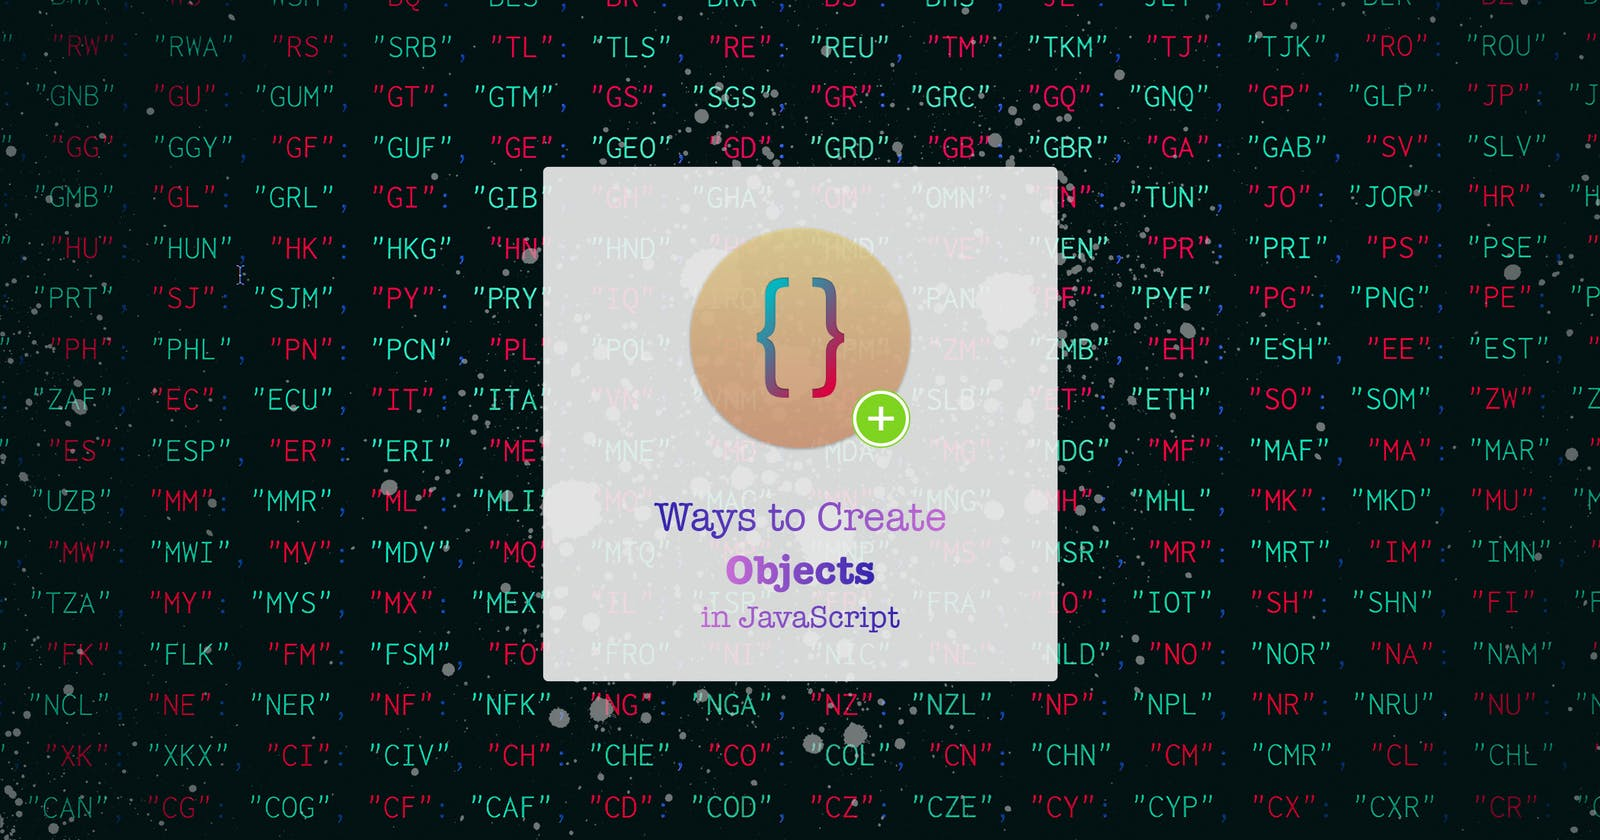 Different ways to create Objects in JavaScript